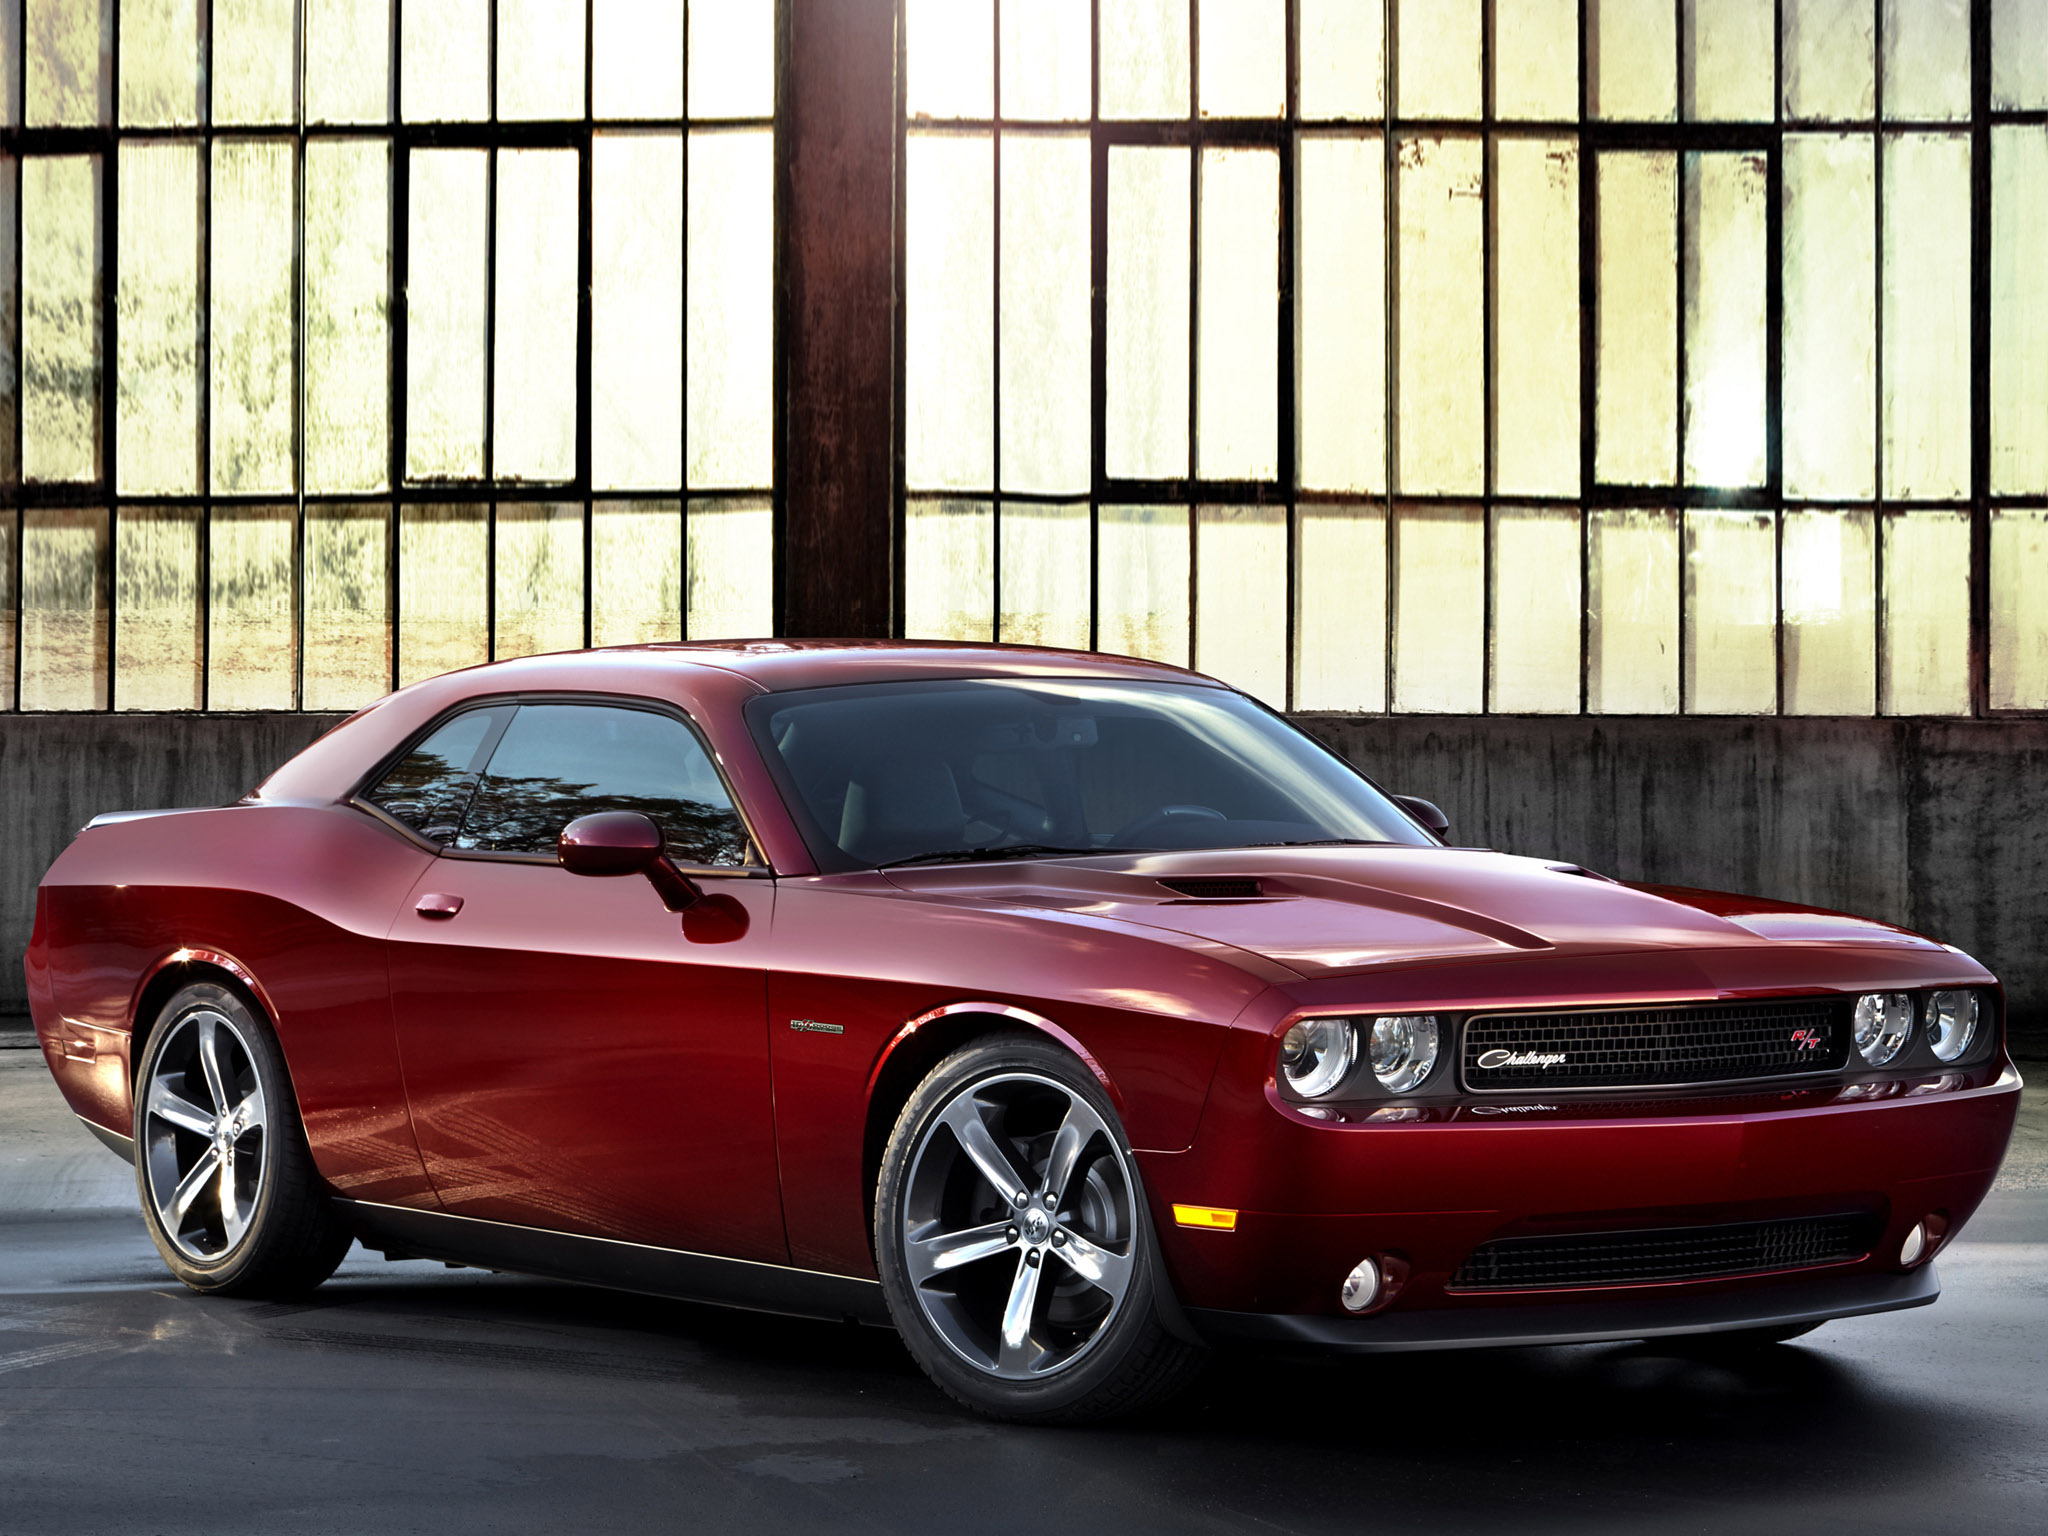 2014 dodge challenger rt muscle r t g wallpaper 2048x1536 178217. Cars Review. Best American Auto & Cars Review